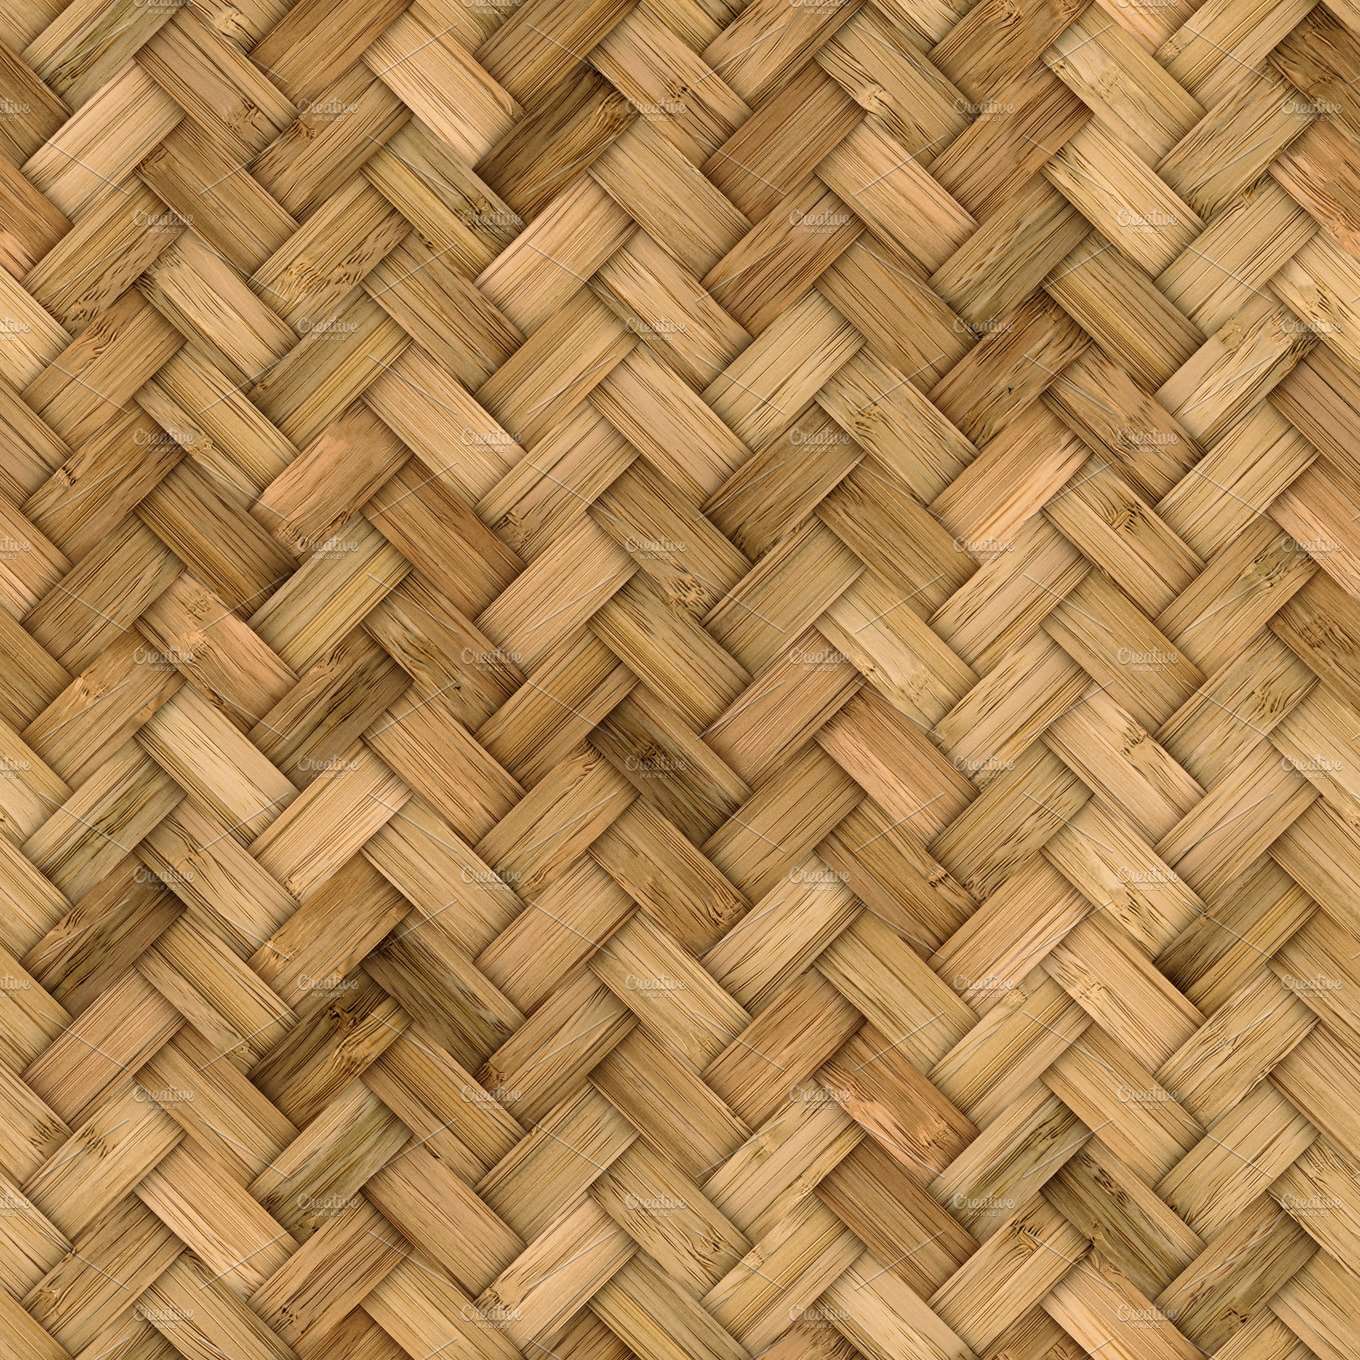 Wicker Rattan Seamless Texture For Cg Abstract Photos